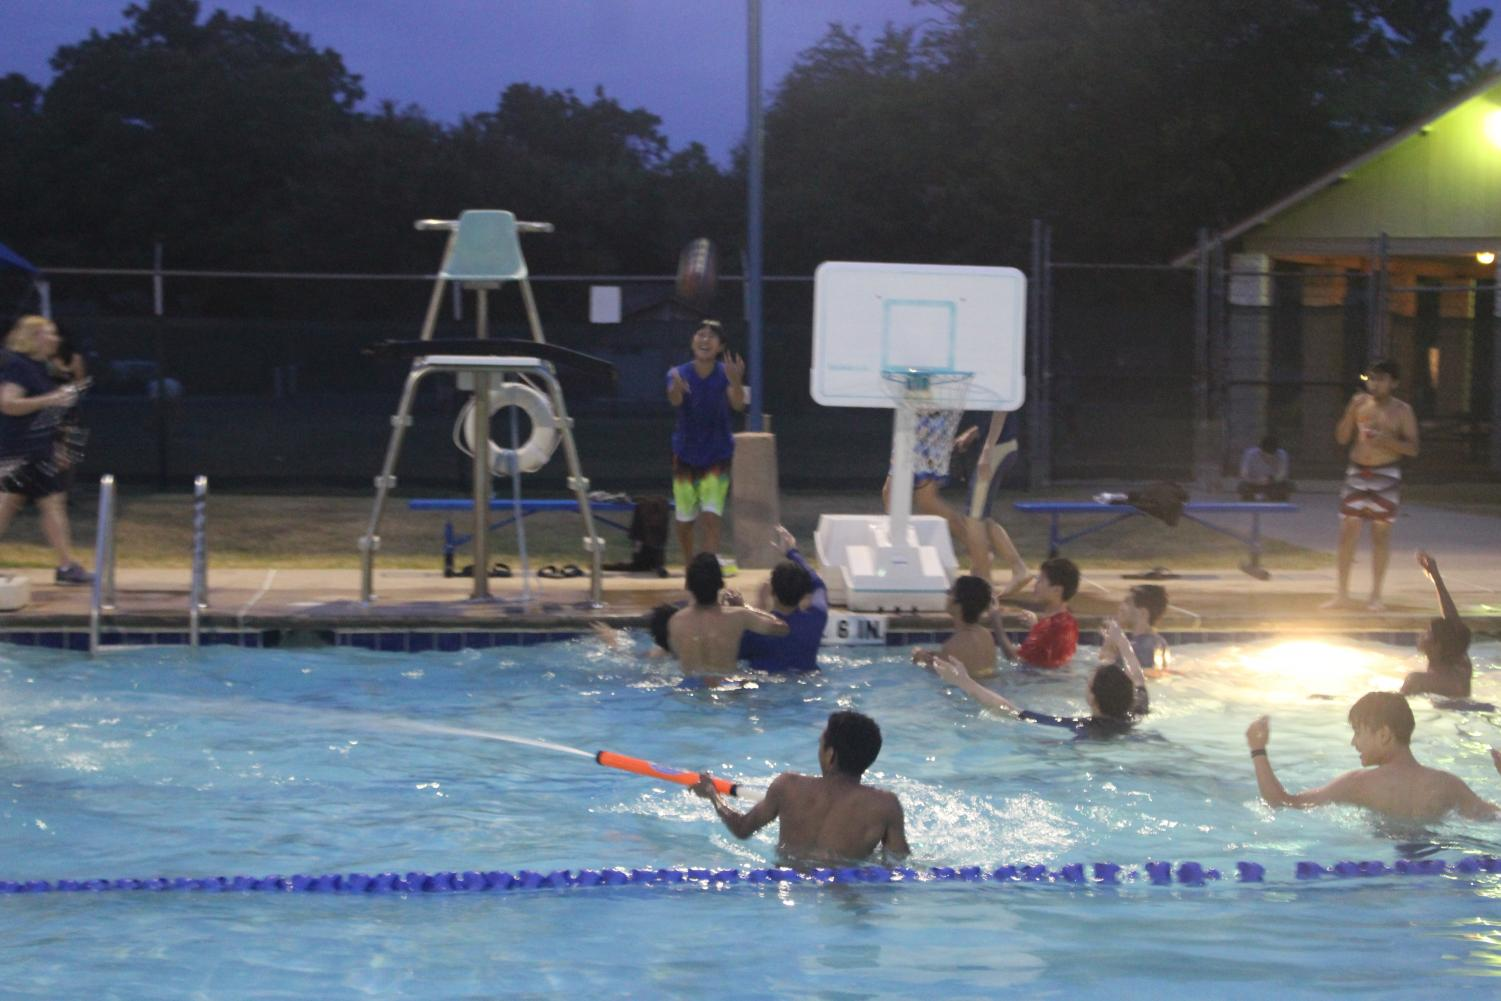 Orchestra+Students+Dive+Into+New+Year+with+Pool+Party